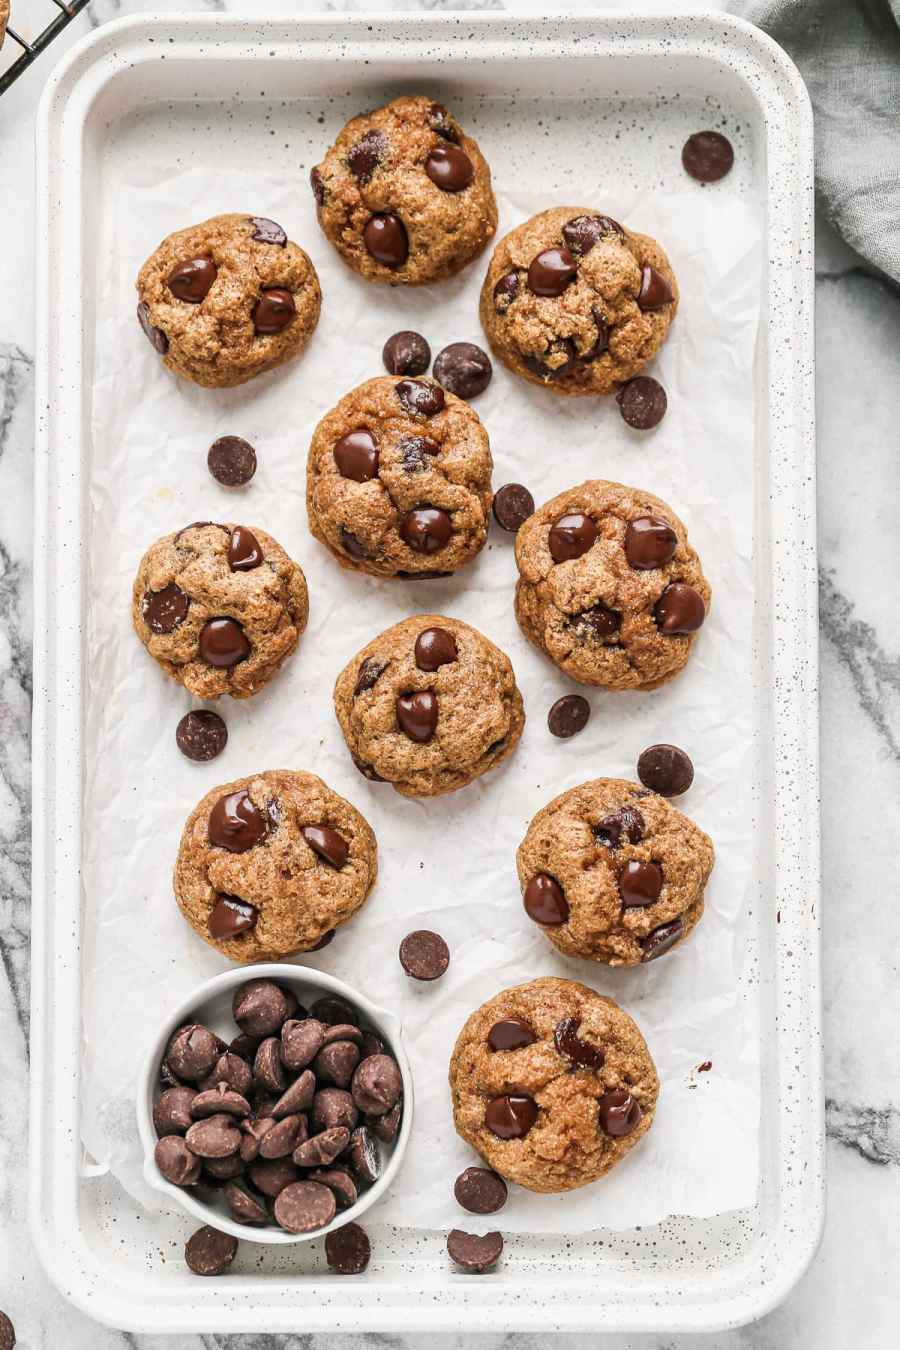 A tray of healthy chocolate chip cookies